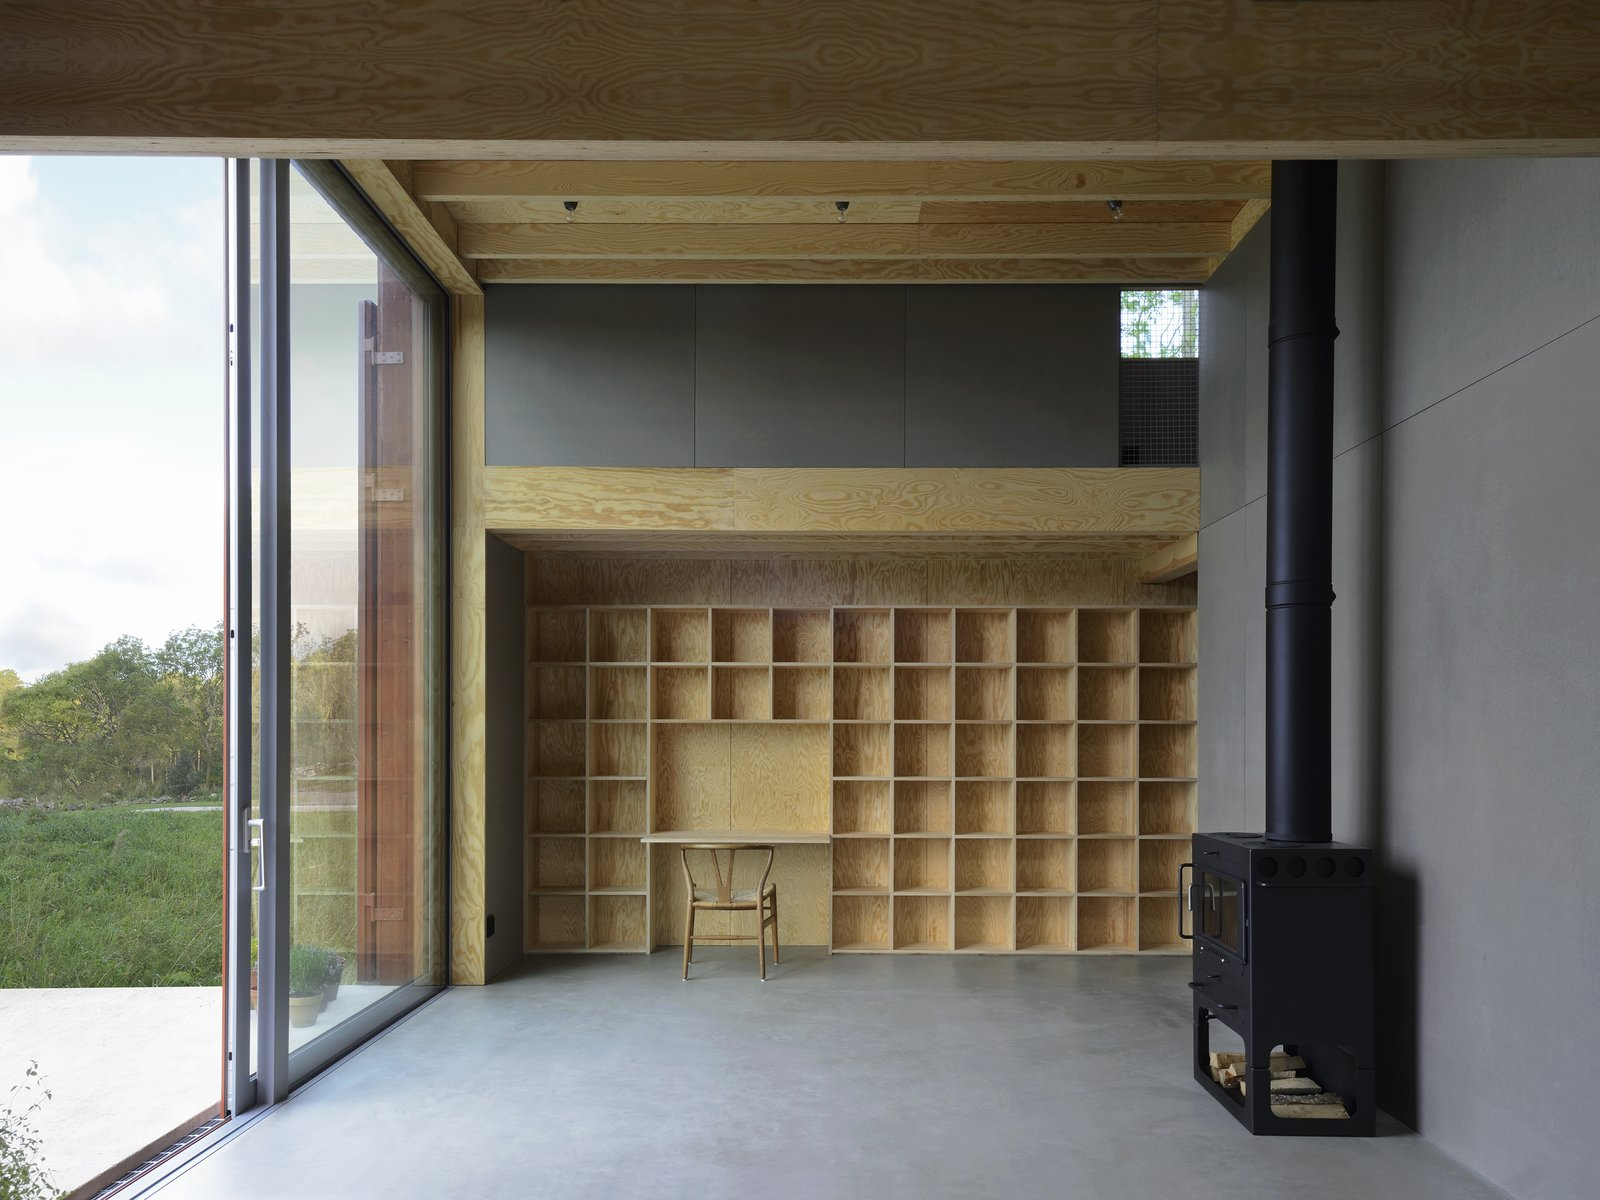 Living room's north side with a built-in bookcase and glass opening to the wide open landscape. Floors of glossy concrete, plywood walls and gray wood fiber boards (type Valchromat), floor tiles and solid plywood furnishings.  Späckhuggaren by Bornstein Lyckefors arkitekter